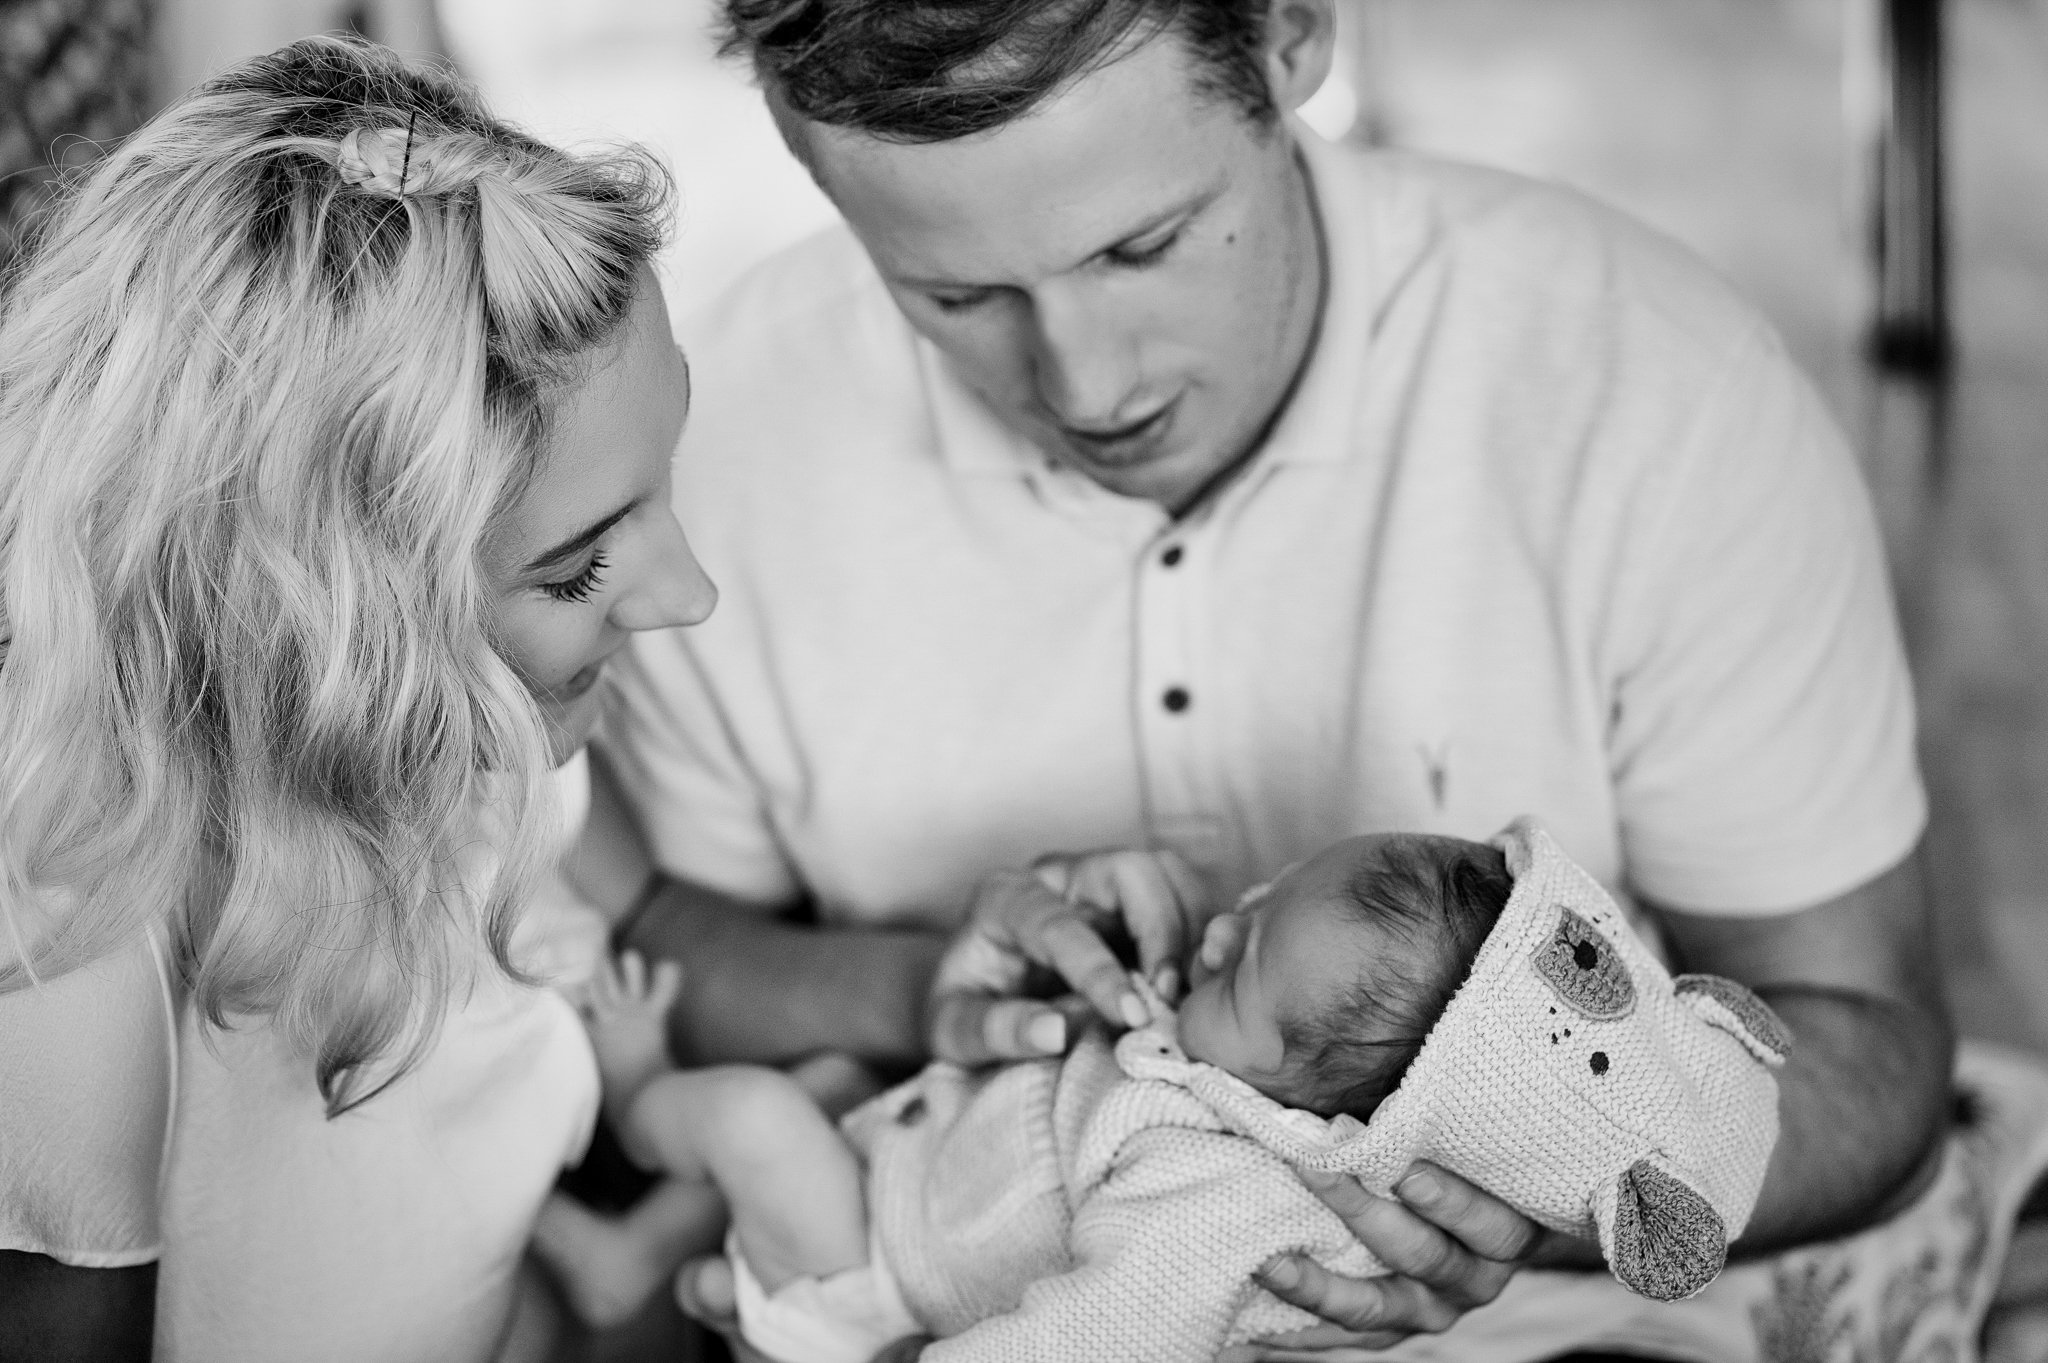 black and white image of a young couple holding a new baby